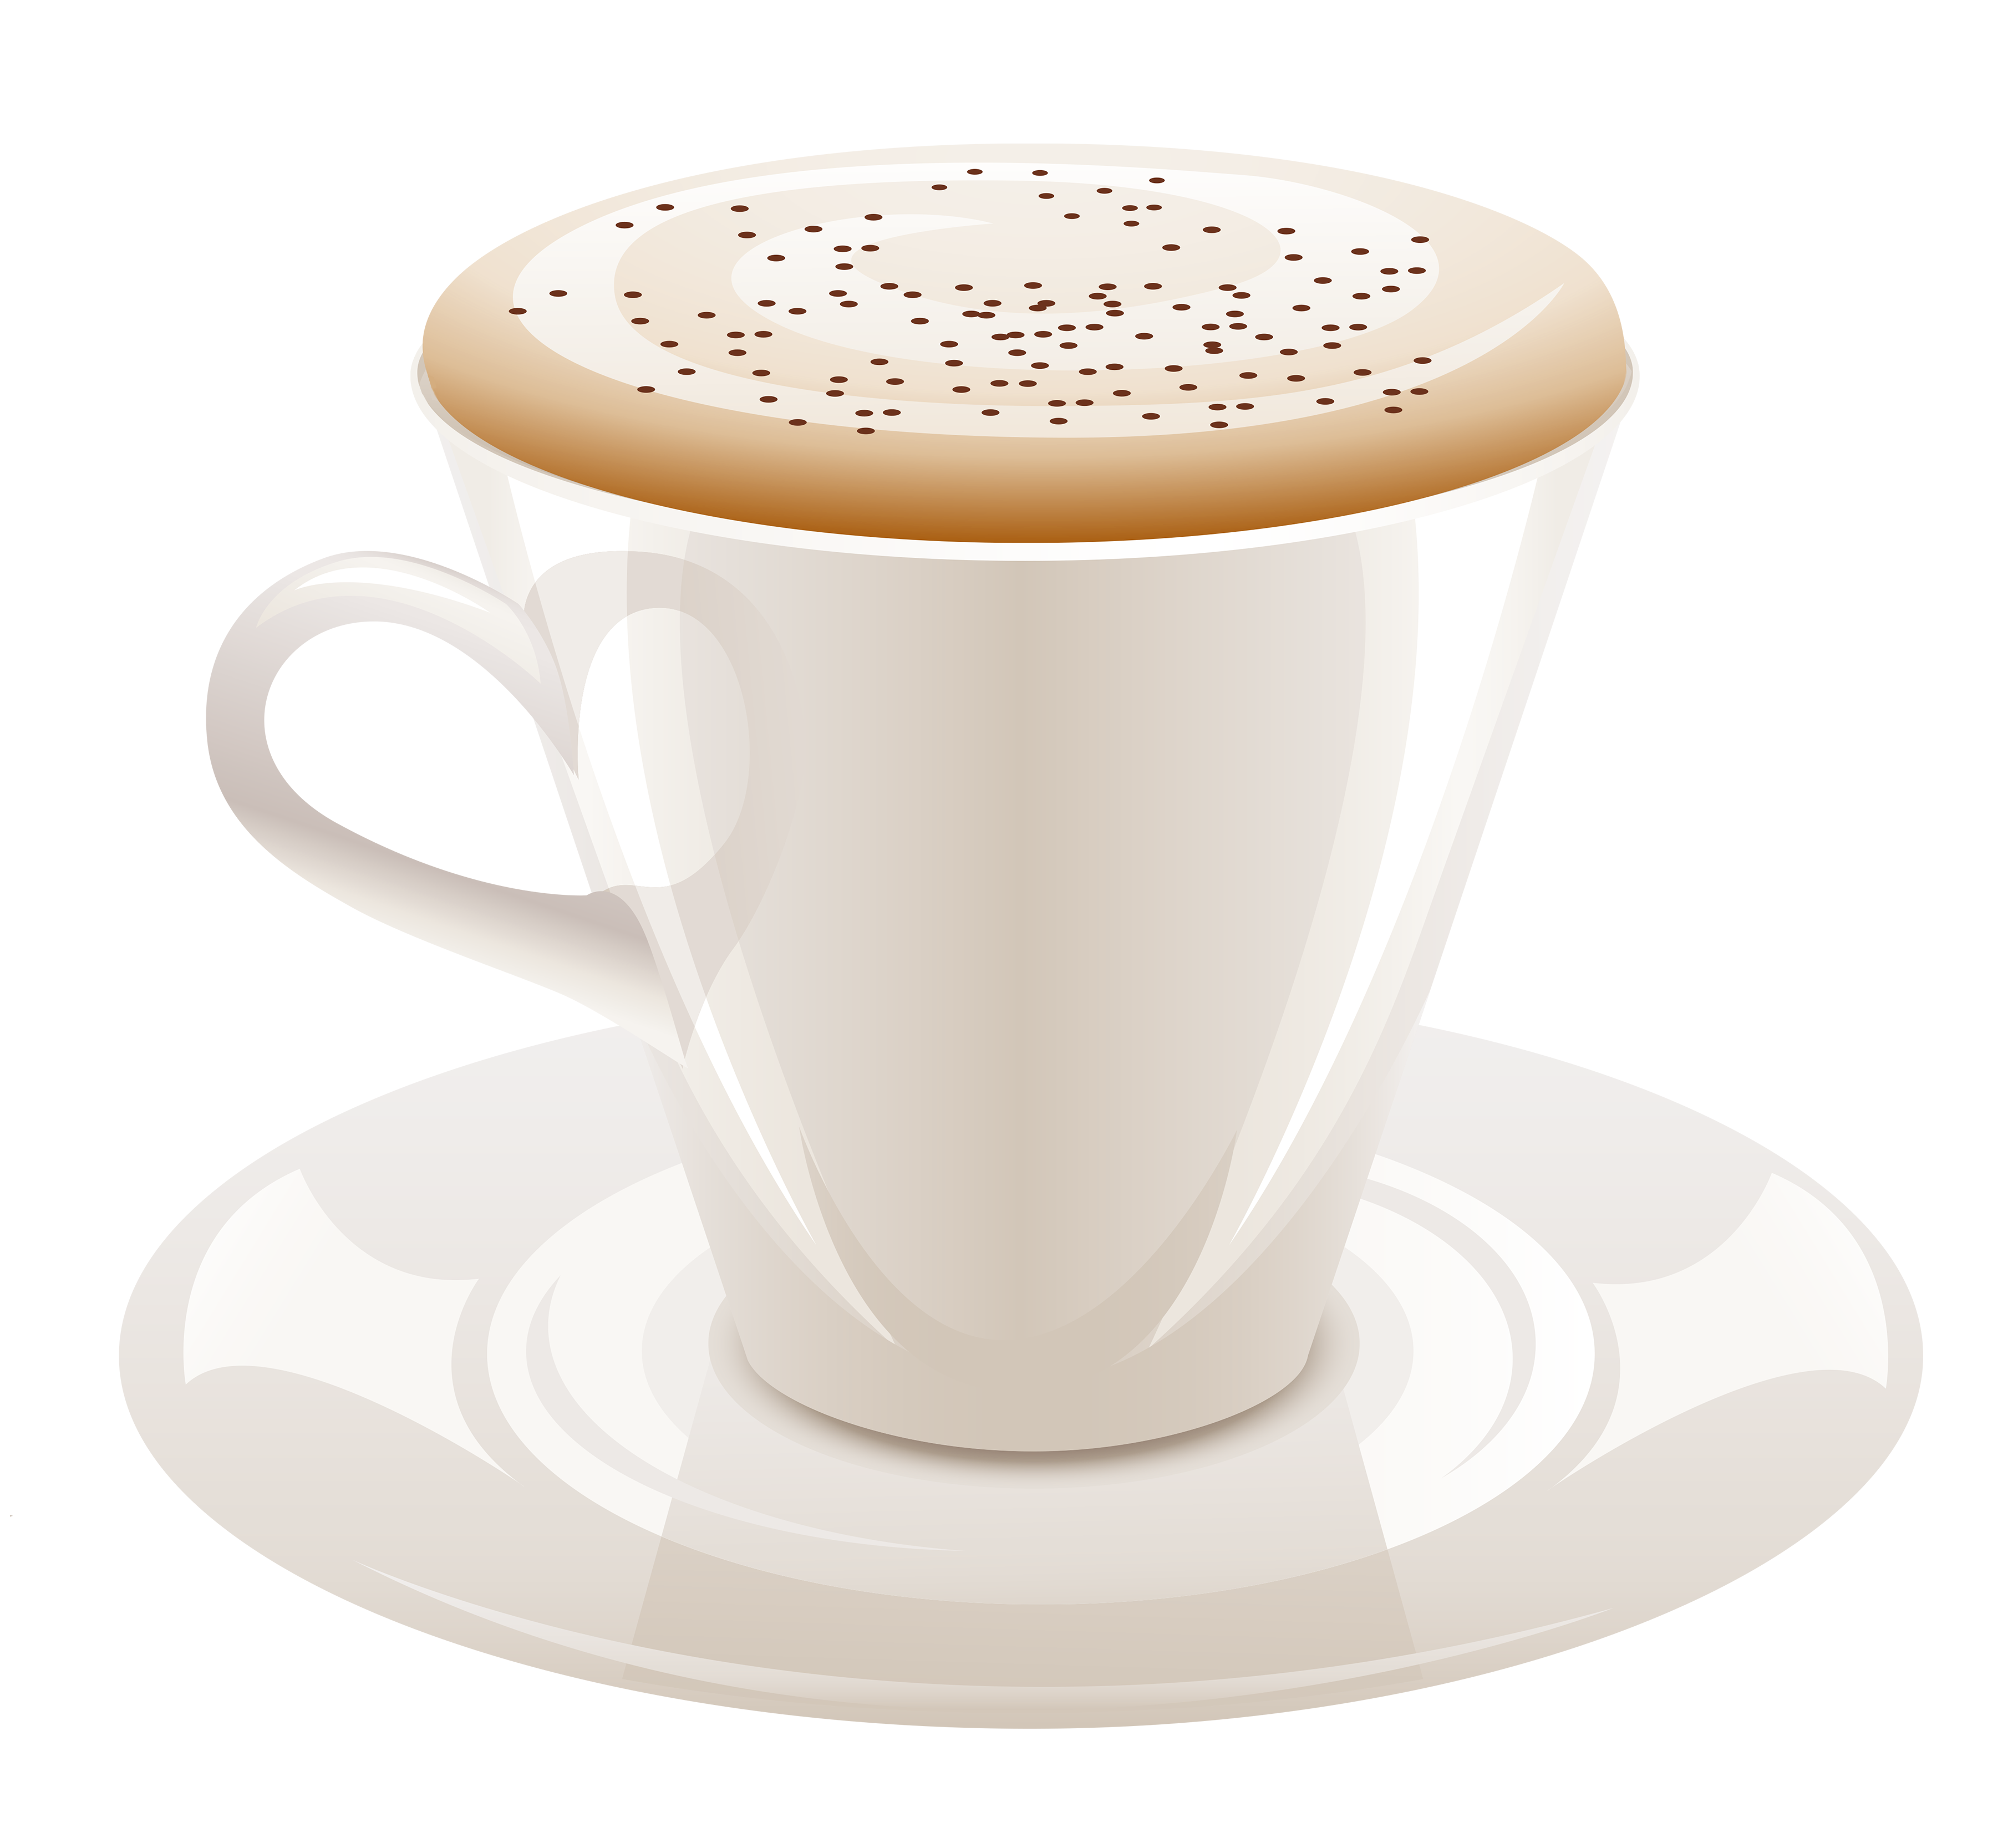 Coffee cup transparent png. Picture gallery yopriceville high